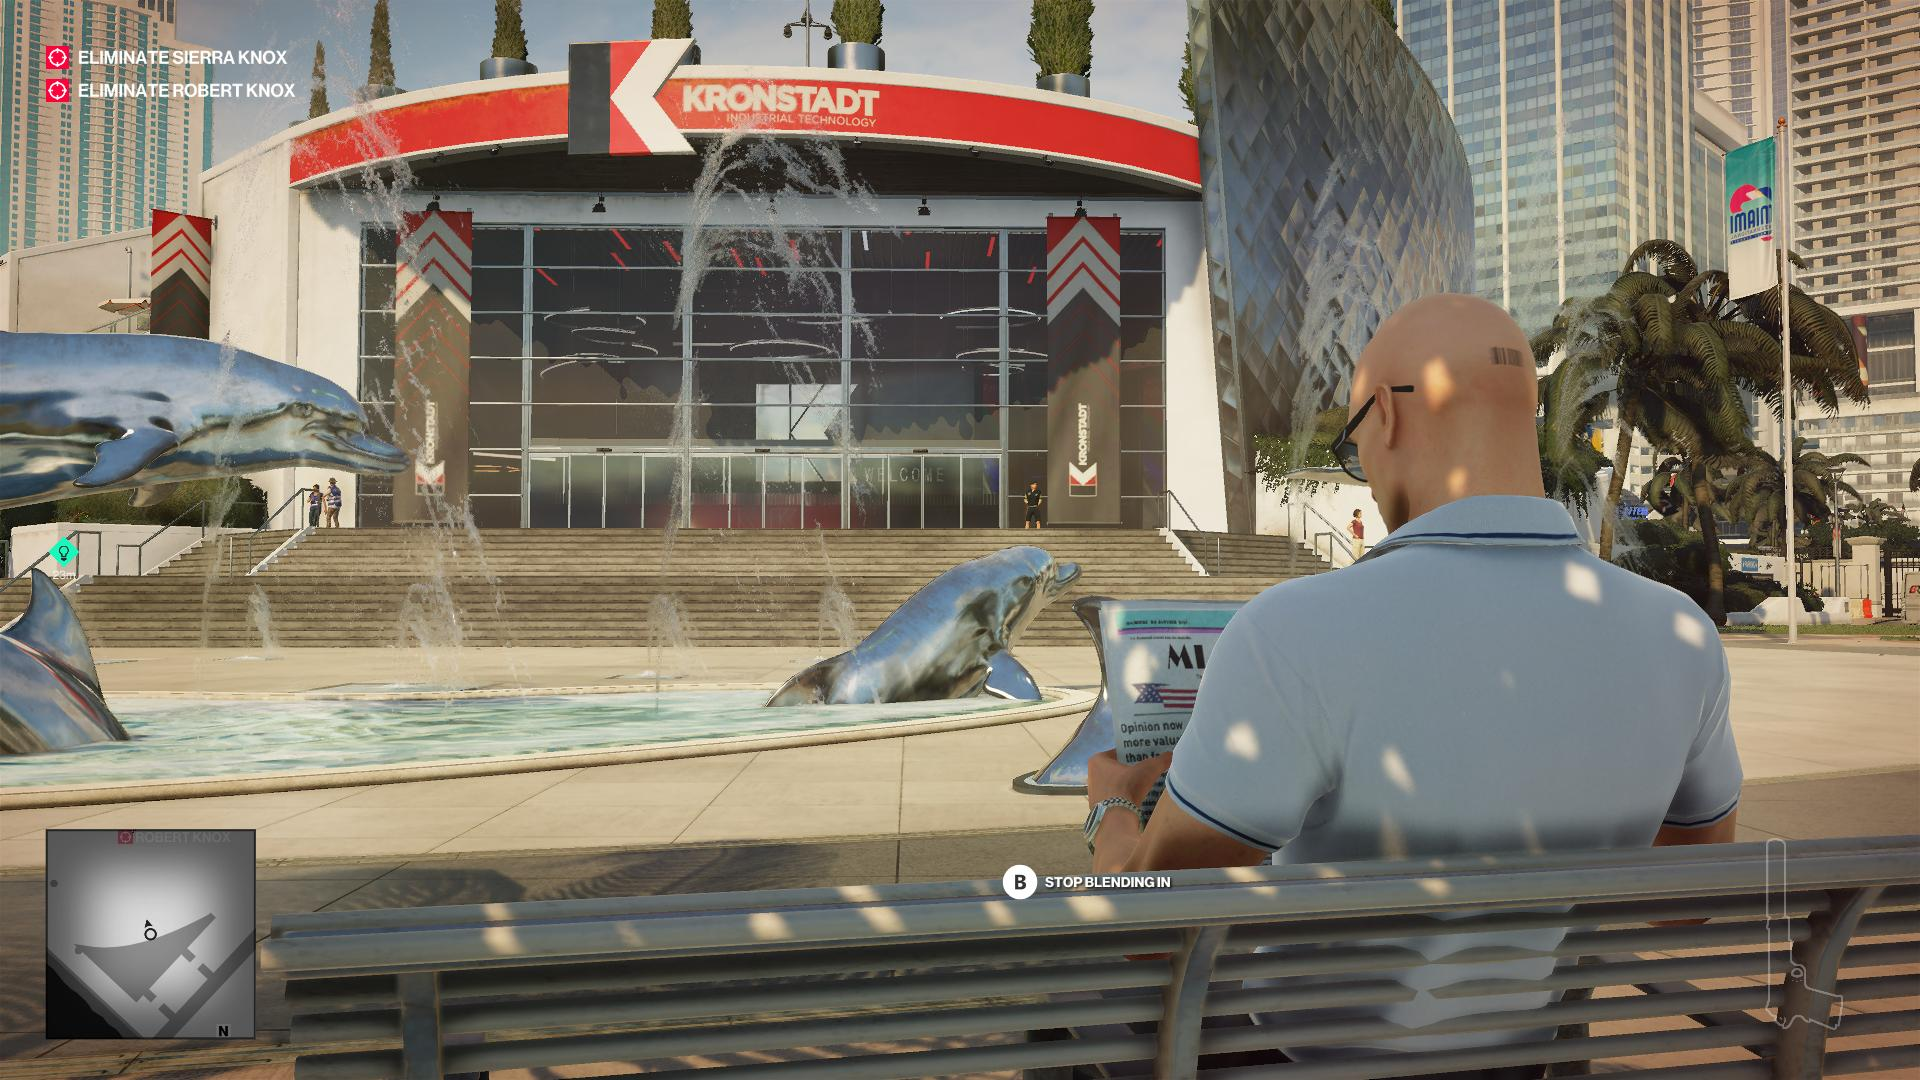 Agent 47 in a polo shirt, sat on a bench and reading a newspaper.